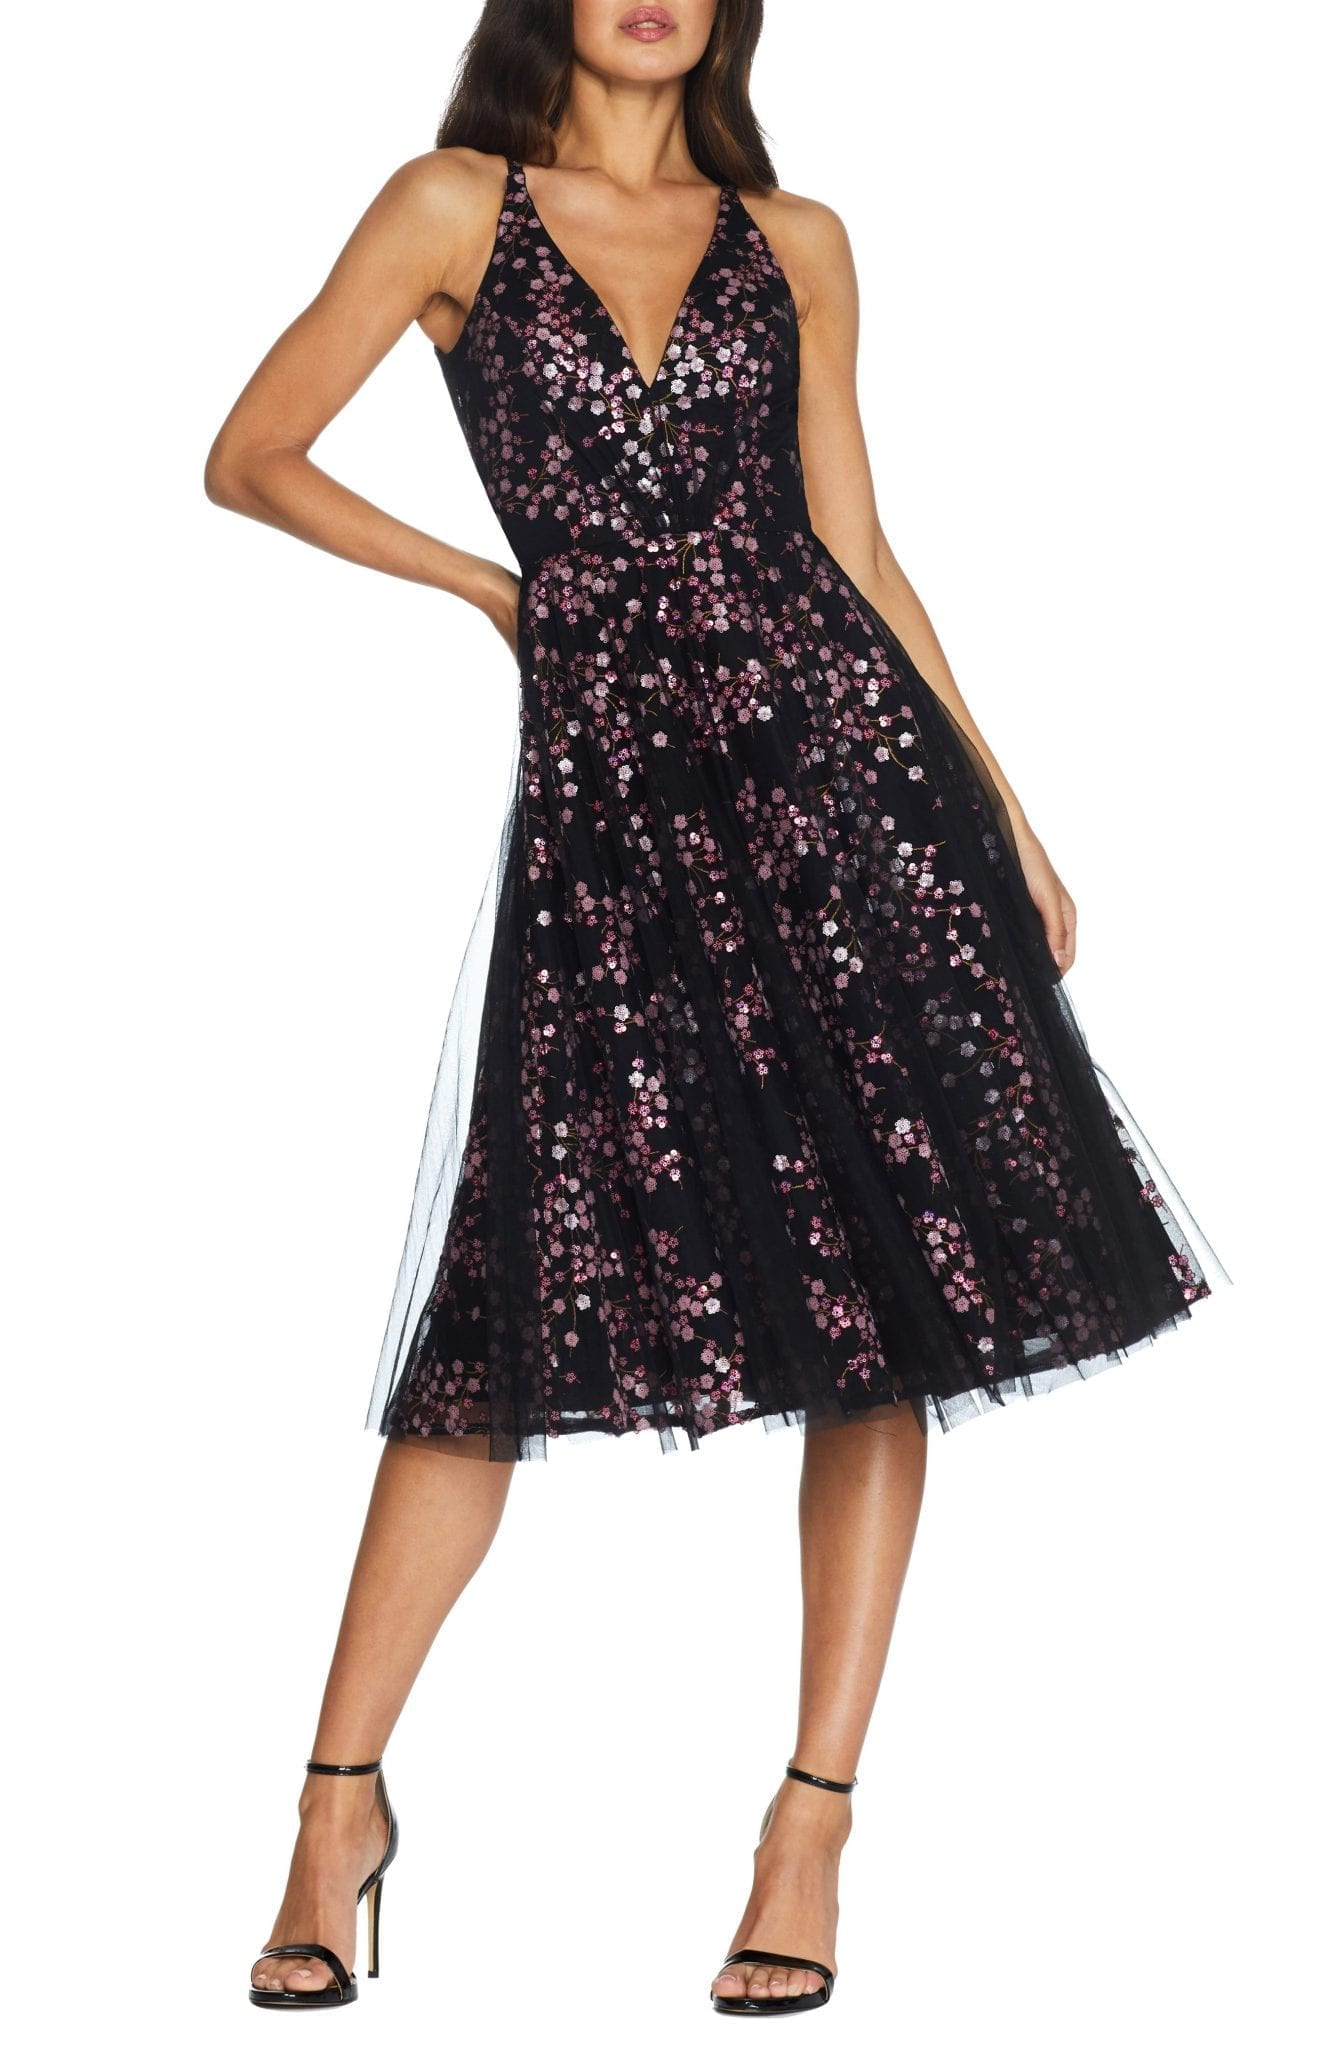 DRESS THE POPULATION Courtney Sequin Floral Cocktail Dress